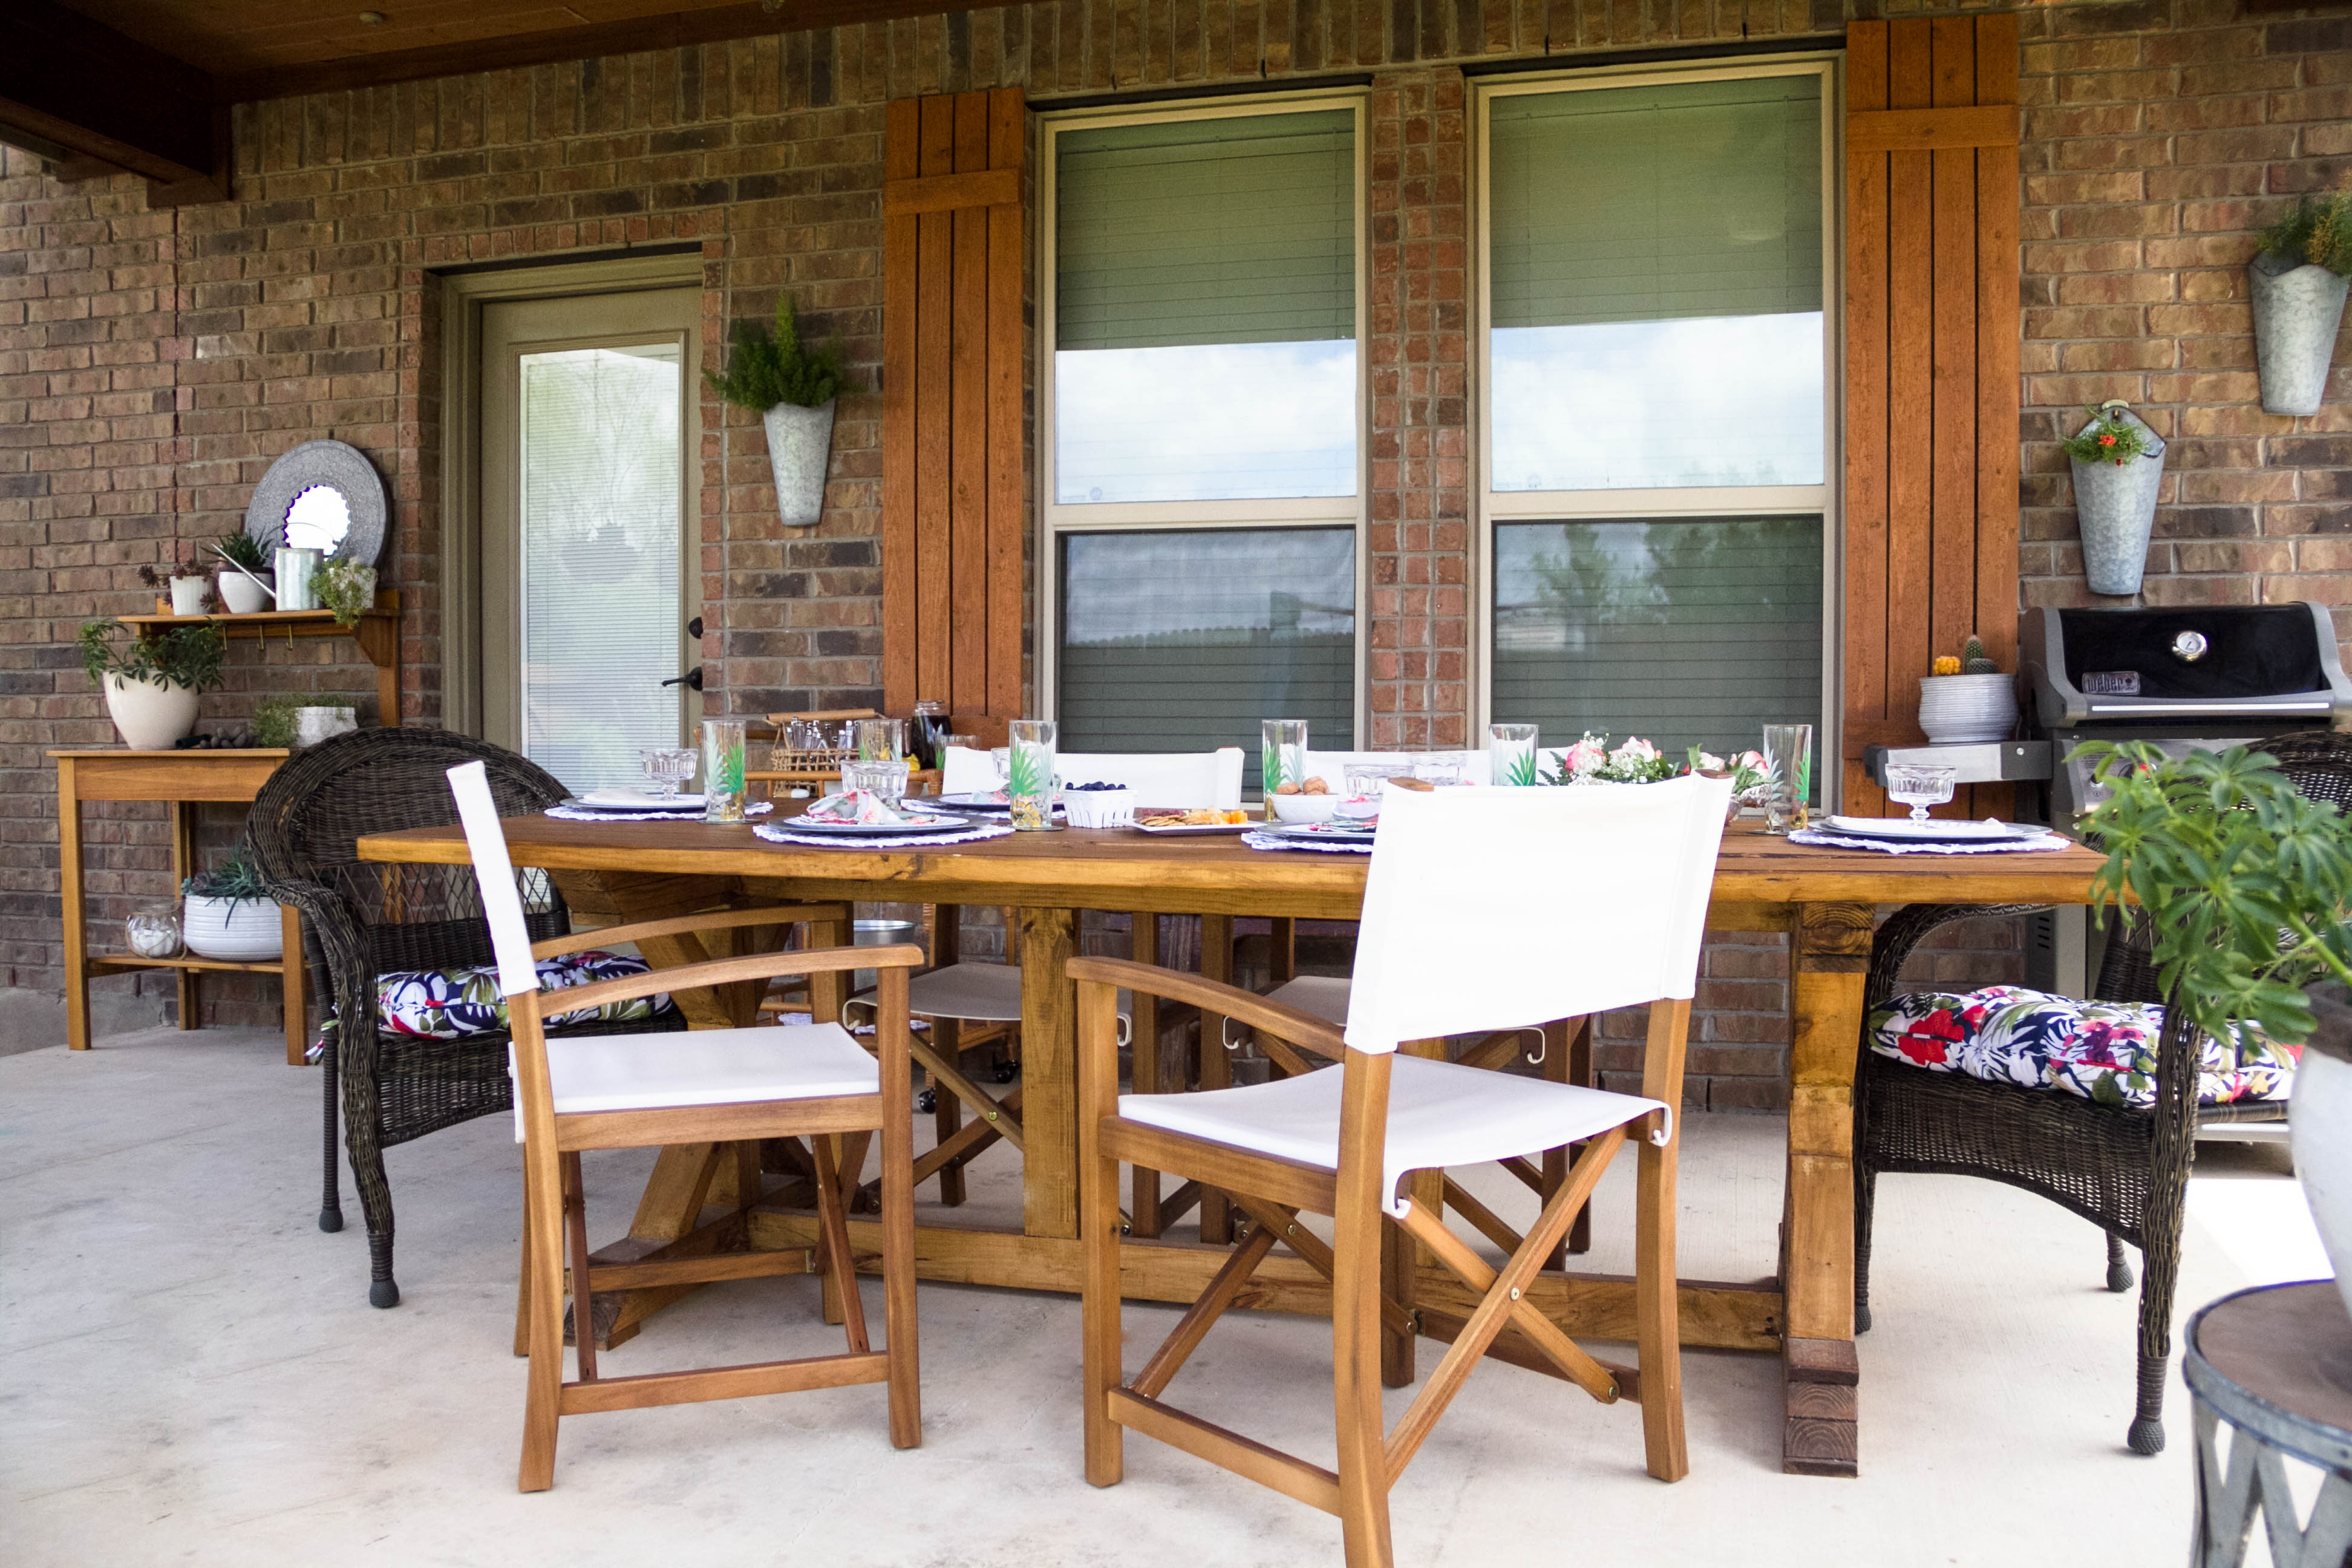 Outdoor Dining, DIY Table